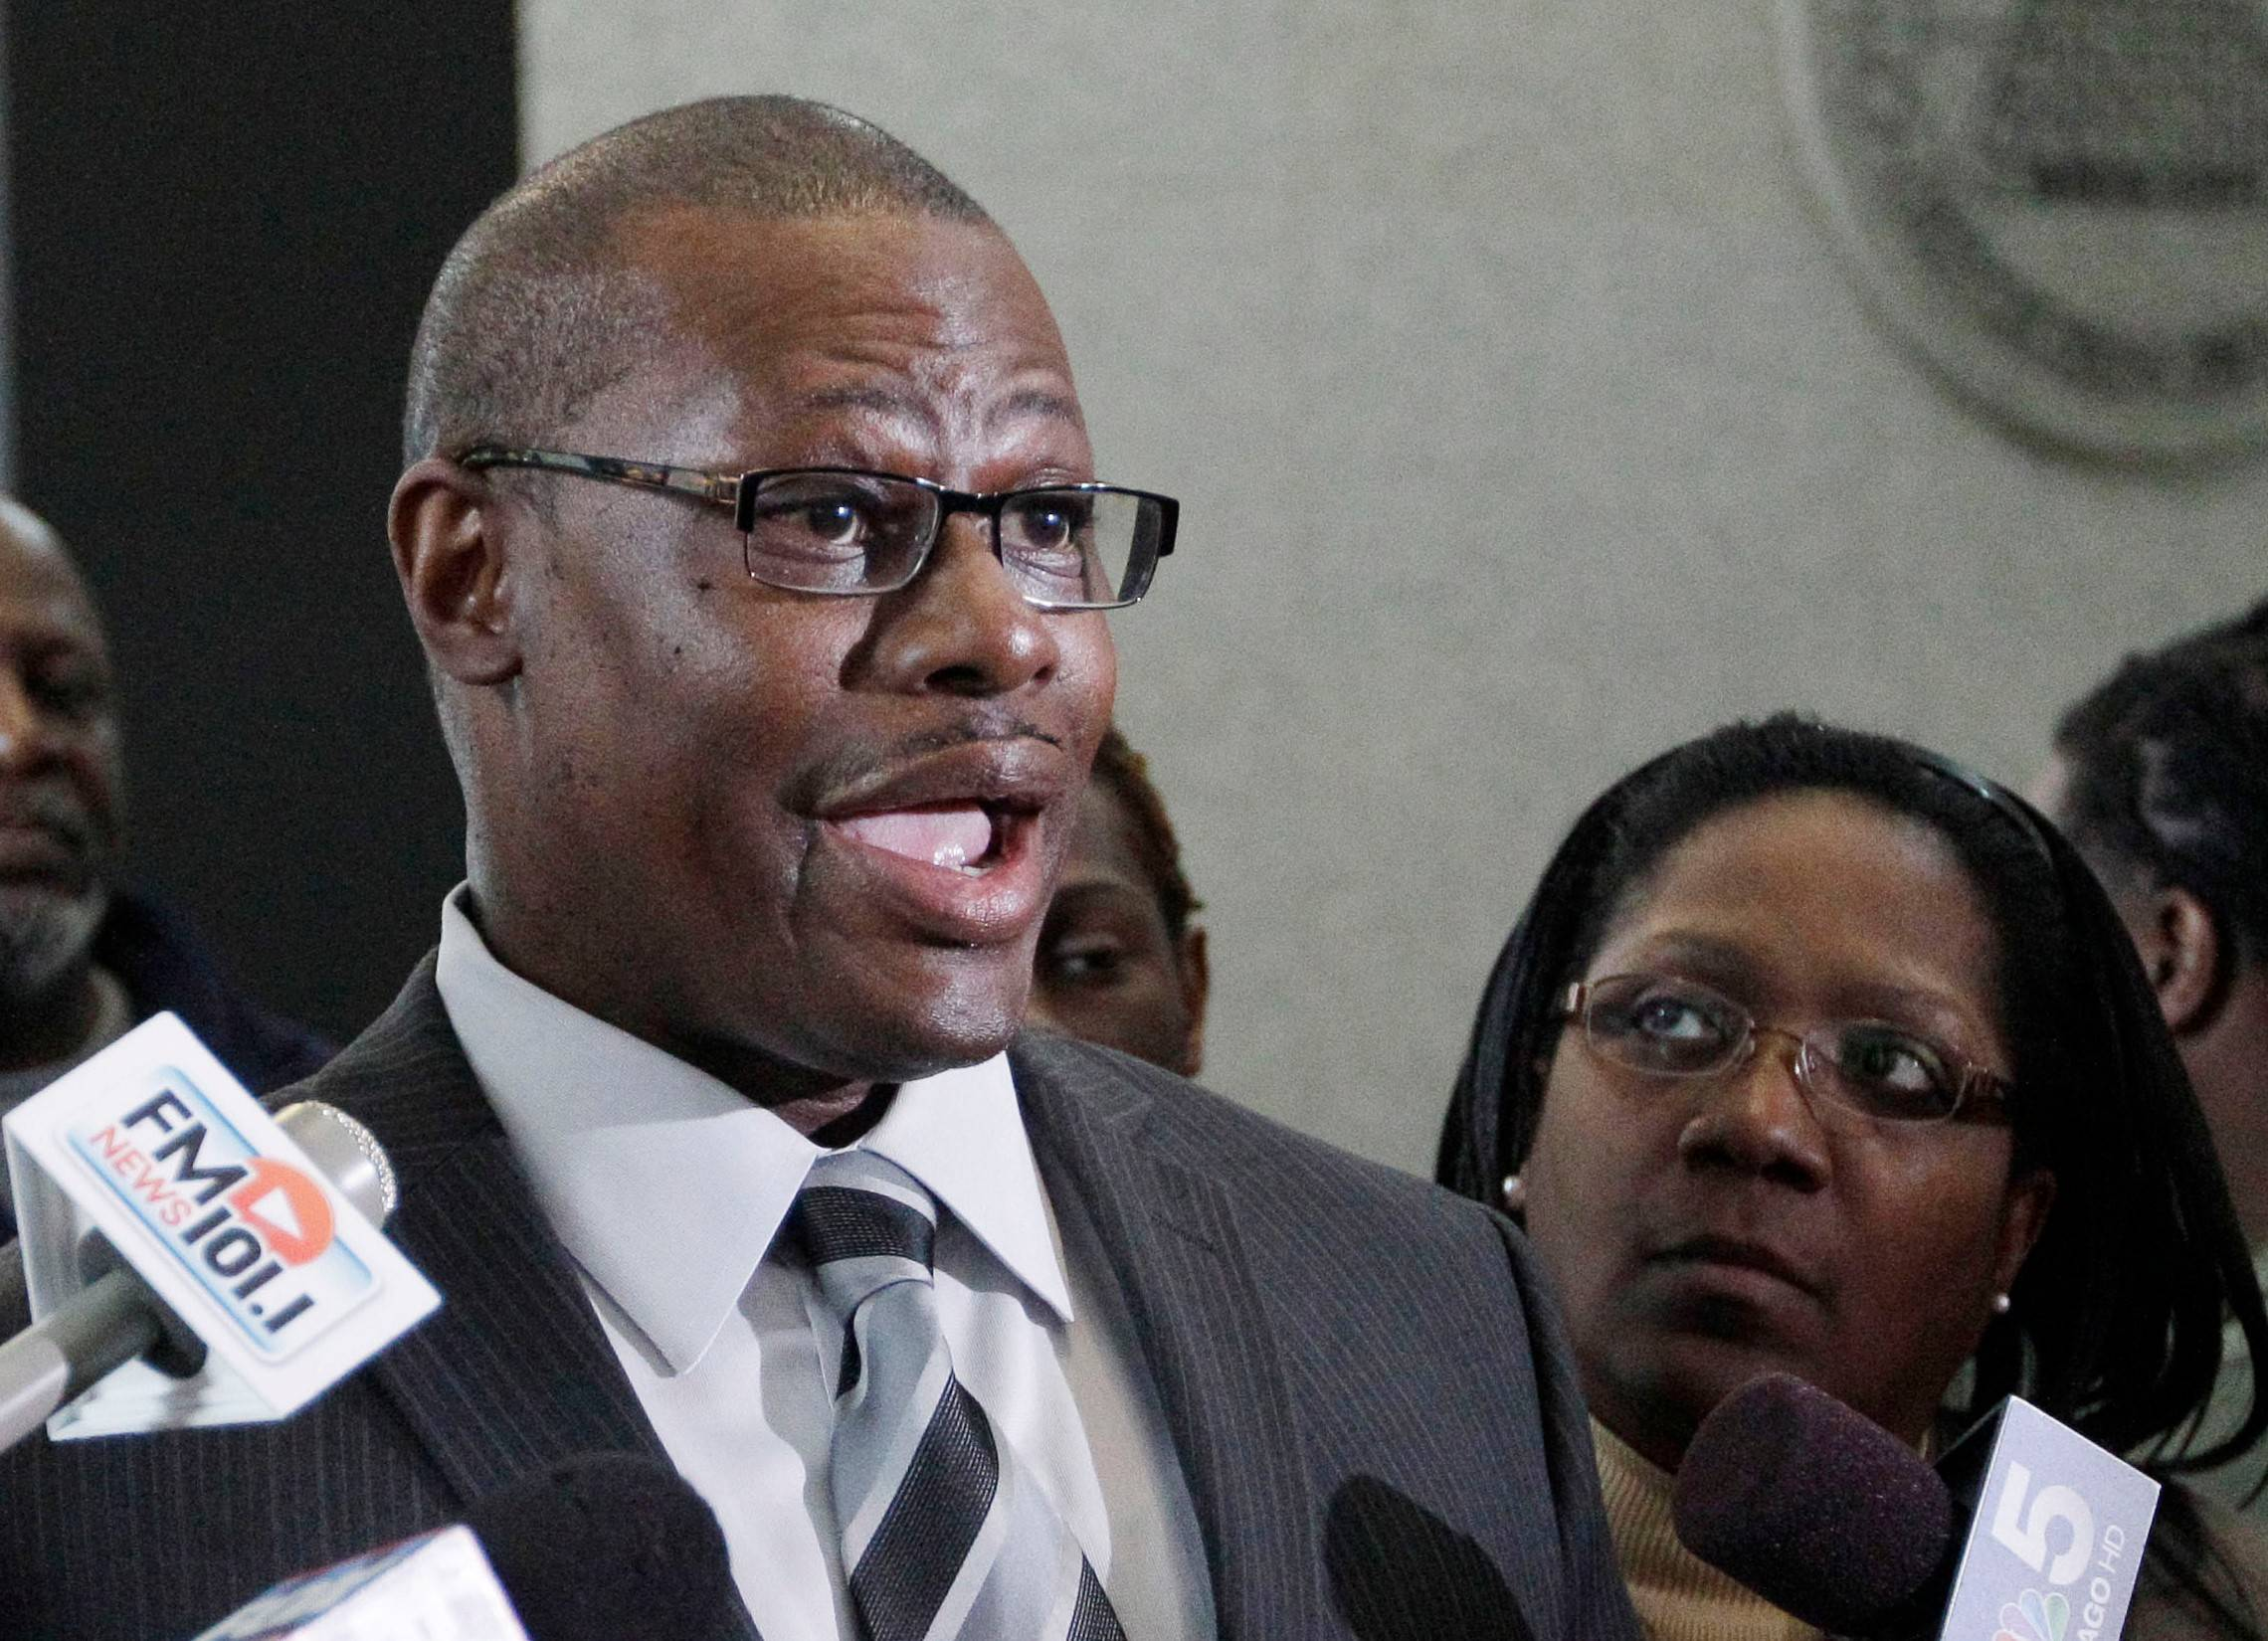 State Rep. Derrick Smith has pleaded not guilty to bribery.